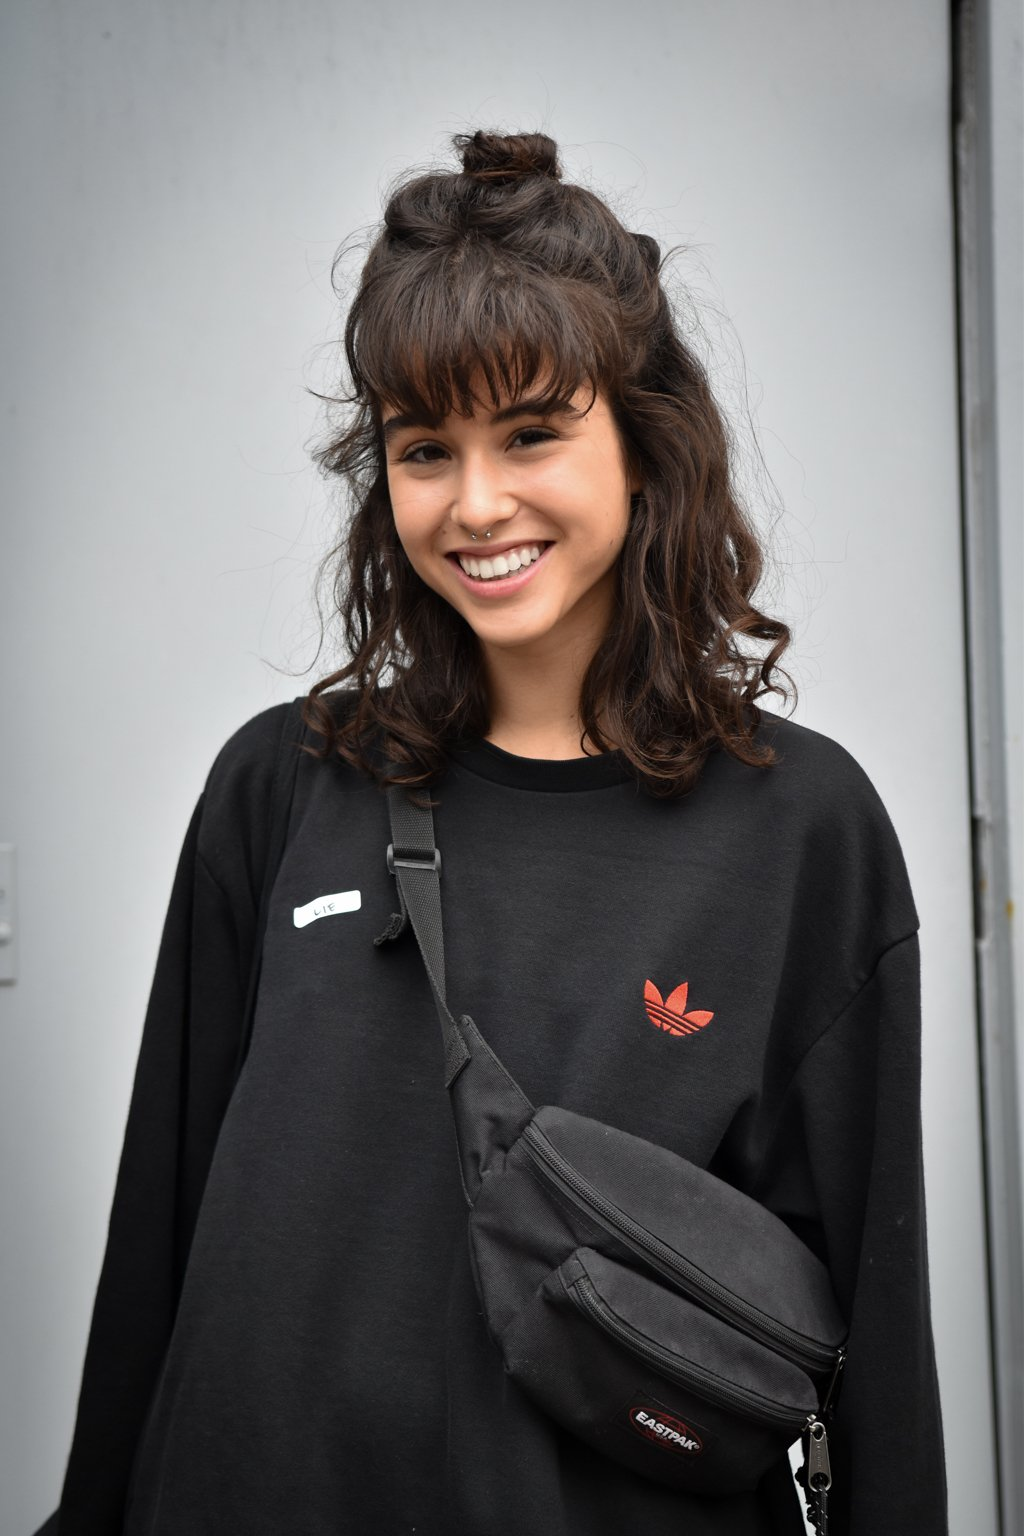 NYFW SS19 street style: Brunette with shoulder length wavy hair and a fringe styled in a half-up bun hairstyle